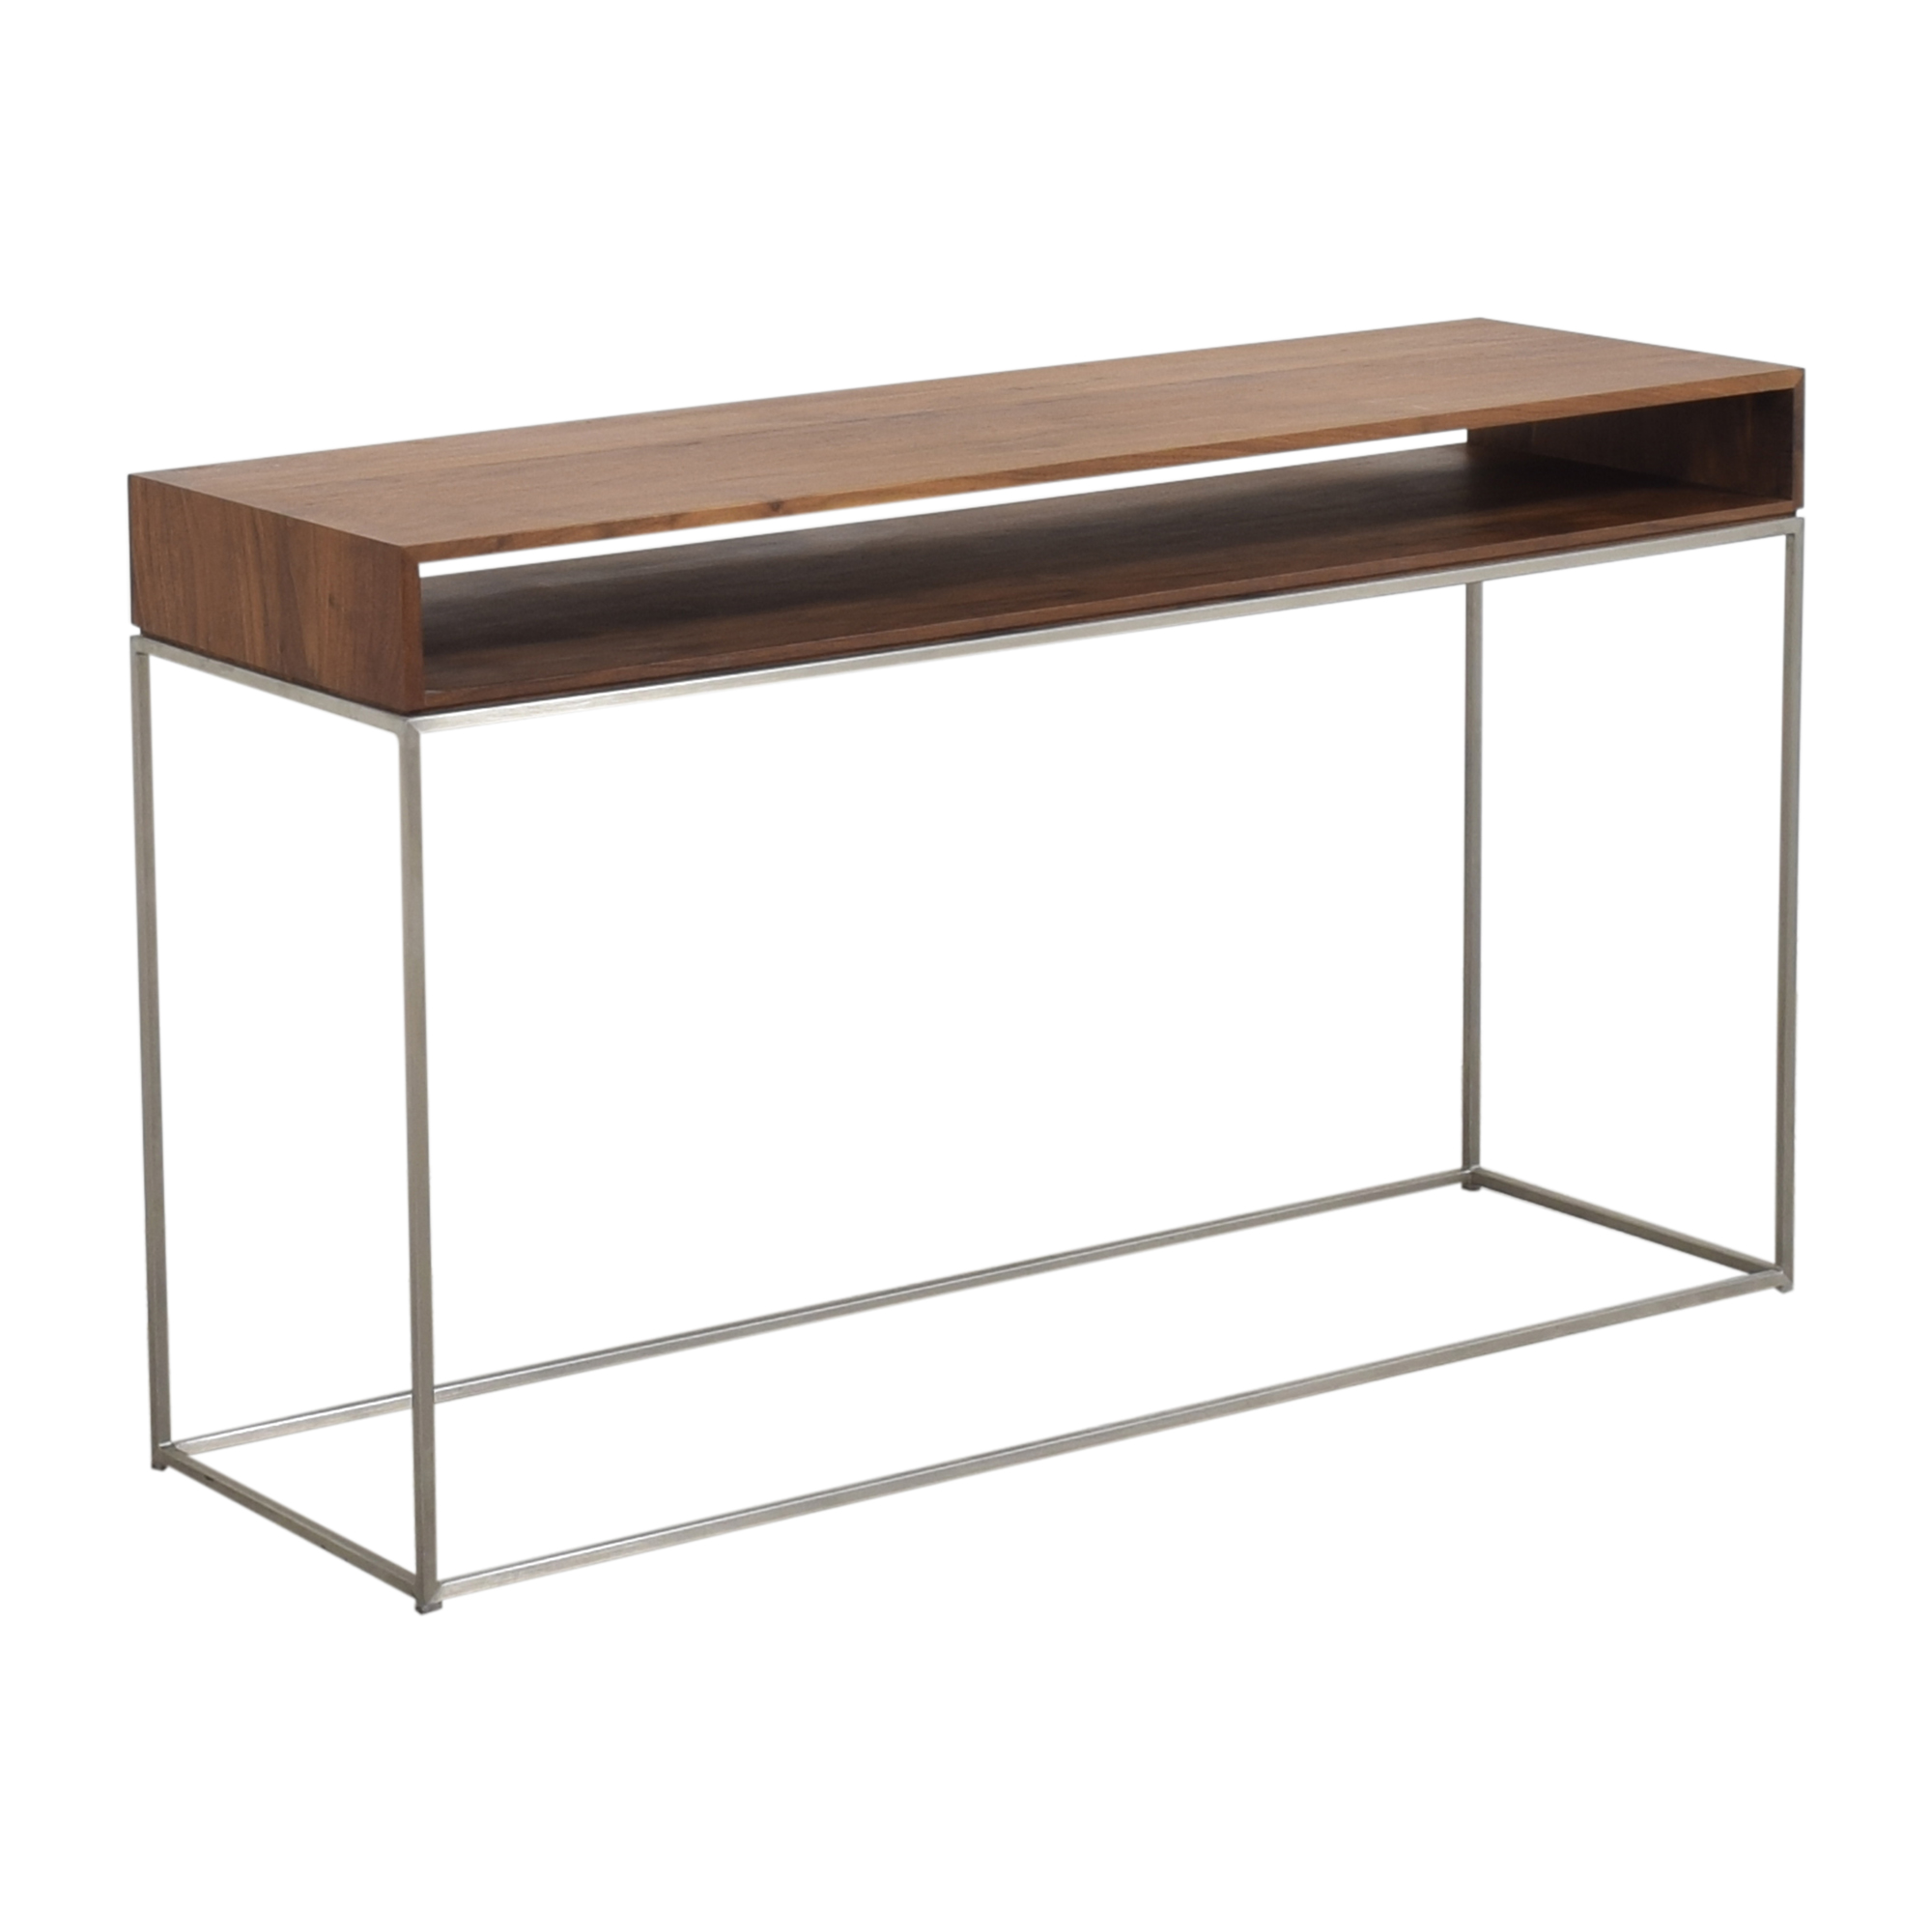 Crate & Barrel Crate & Barrel Frame Console Table price